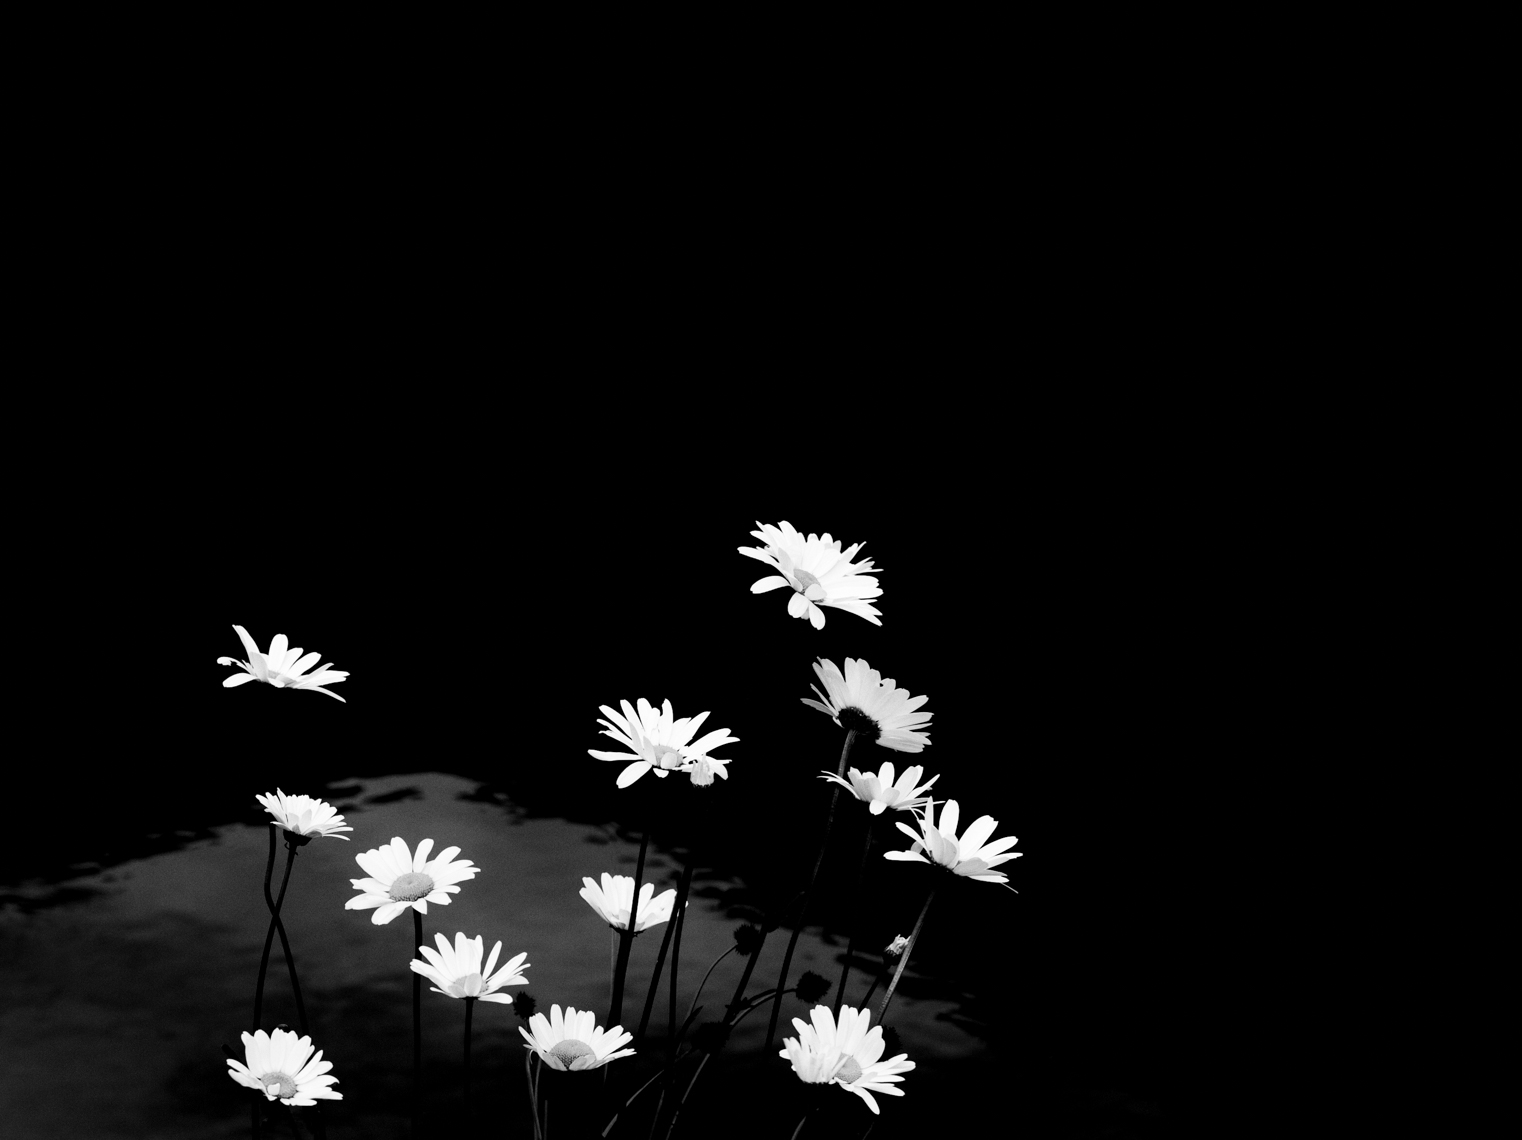 BLACK AND WHITE FLOWER IMAGE | TOSCA RADIGONDA PHOTOGRAPHY